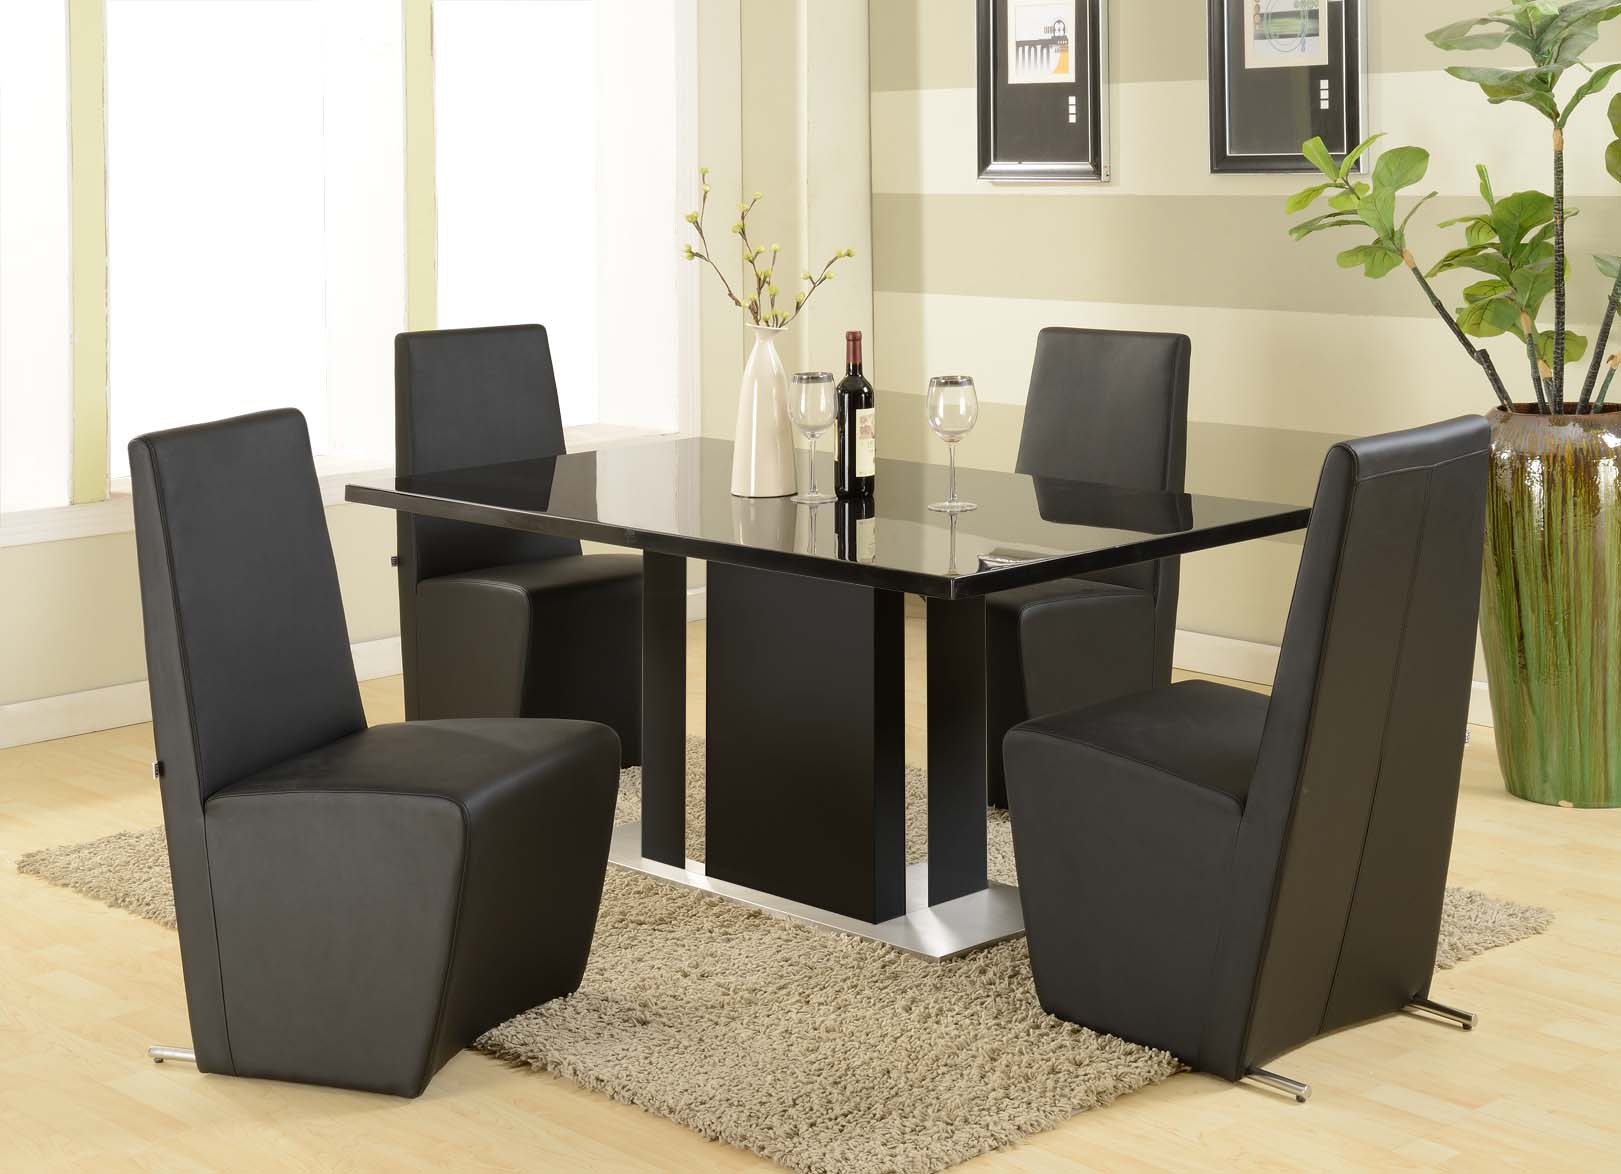 Great Modern Dining Room Table Sets 1621 x 1174 · 155 kB · jpeg